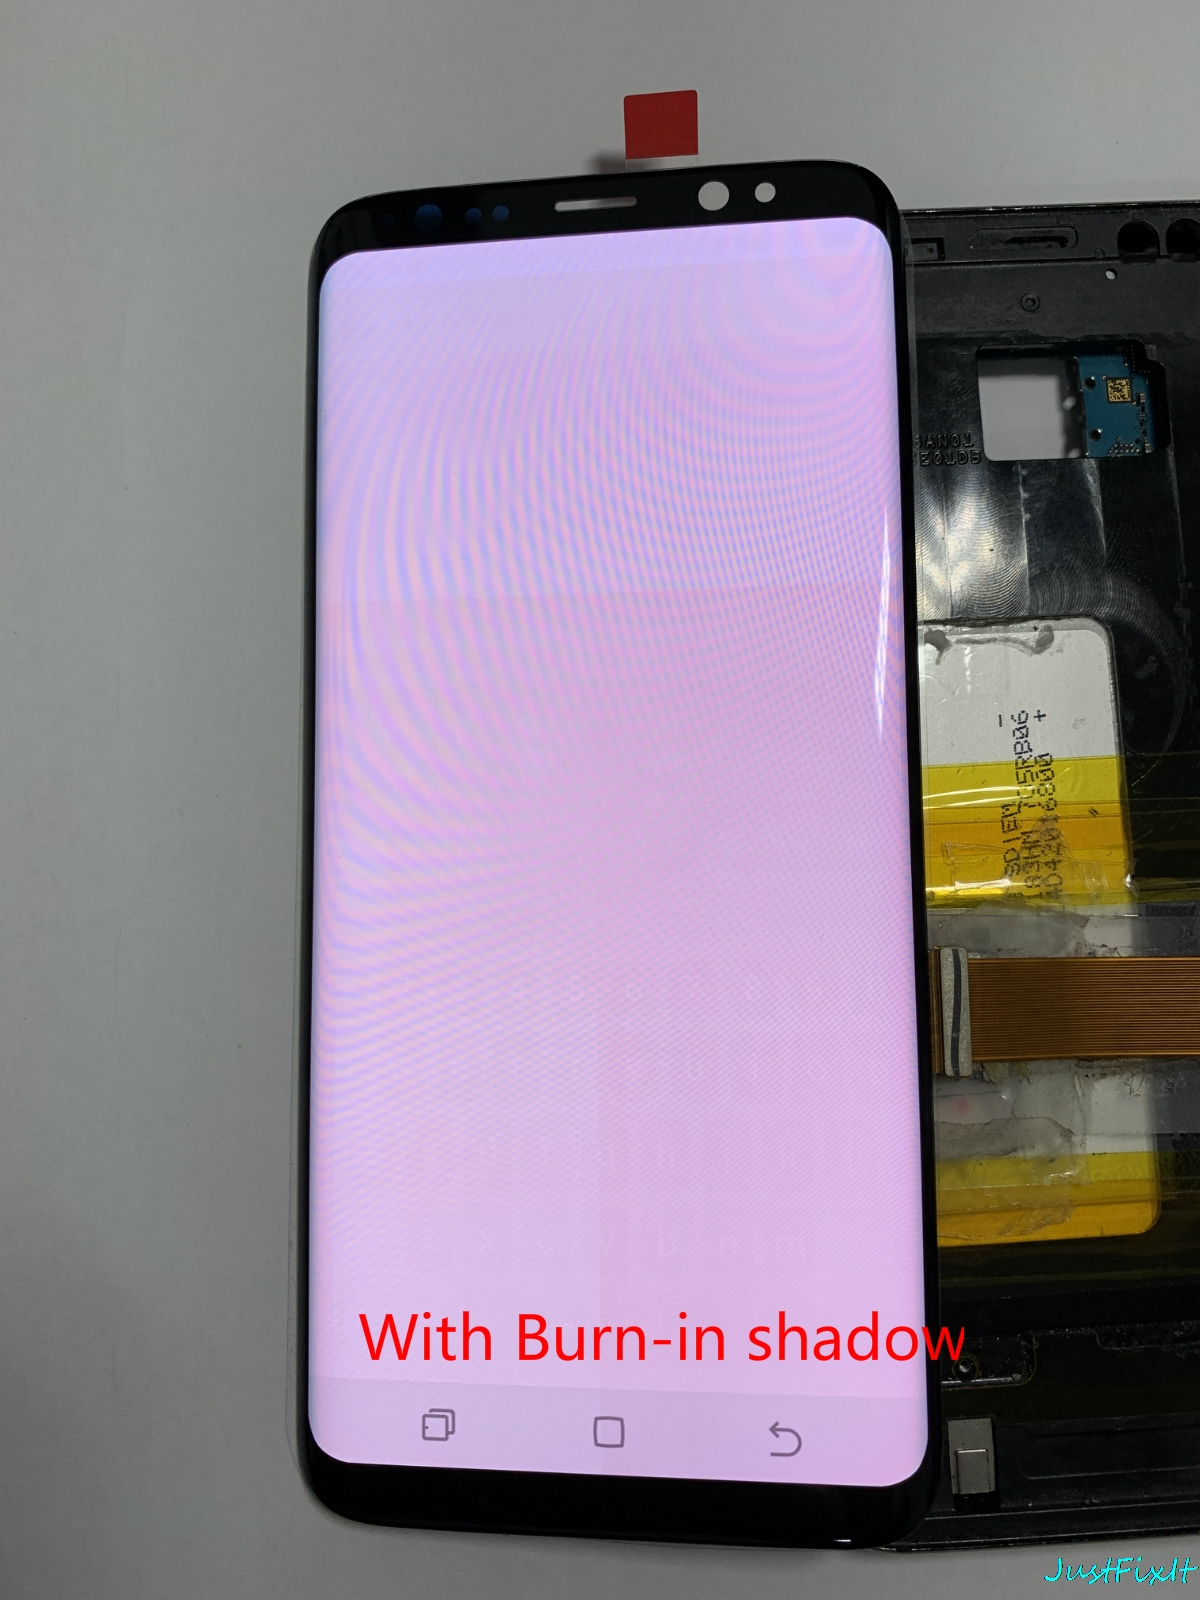 HTB1yG3AXPzuK1Rjy0Fpq6yEpFXae Original Screen with Burn-in Shadow For Samsung Galaxy S8 G950F G950fd lcd display touch screen Digitizer Super amoled